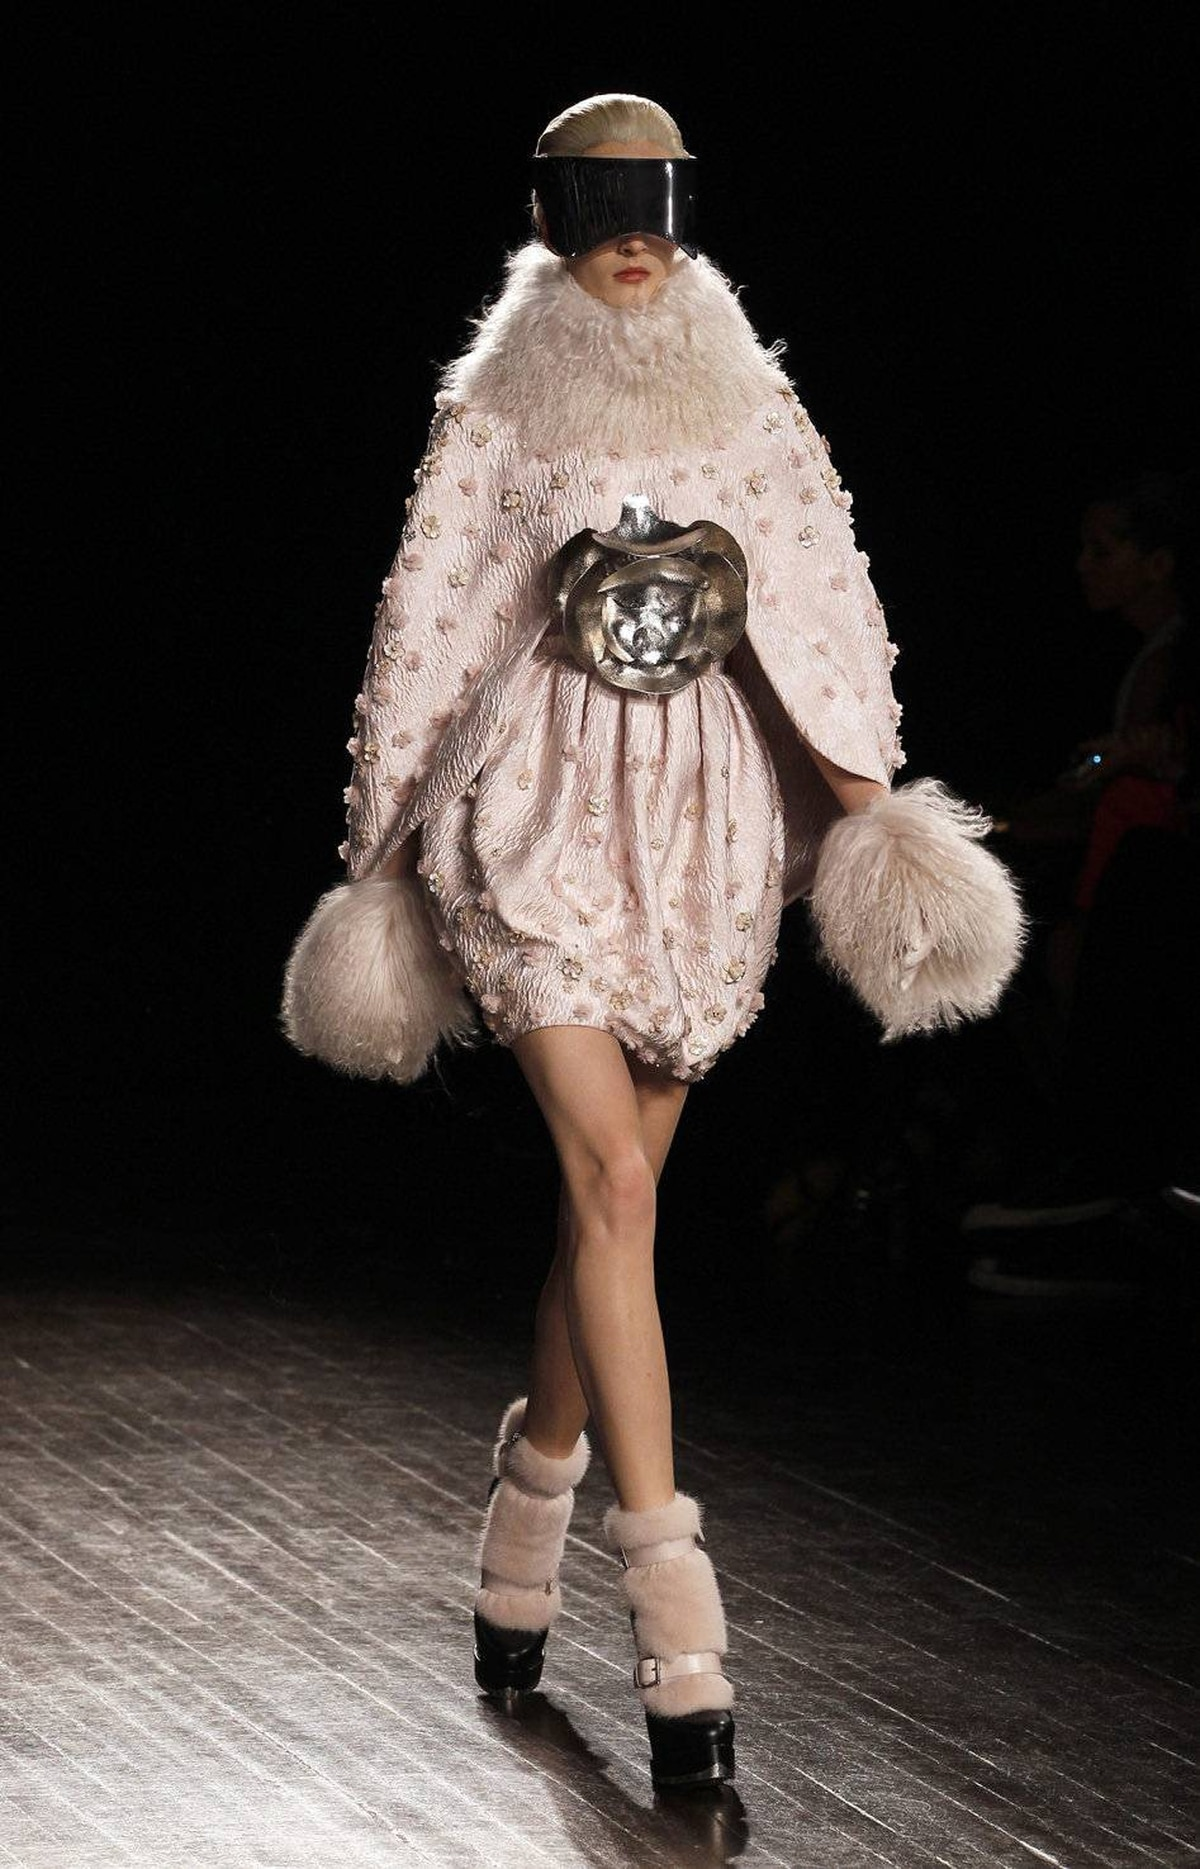 On the penultimate night of Paris Fashion Week, the fashion world was left breathless over the beauty of Sarah Burton's collection for Alexander McQueen. The show began with coatdresses that boasted the fragile sculpting of biscuit porcelain and sumptuous Mongolian fur. Oh, and high-gloss visors.